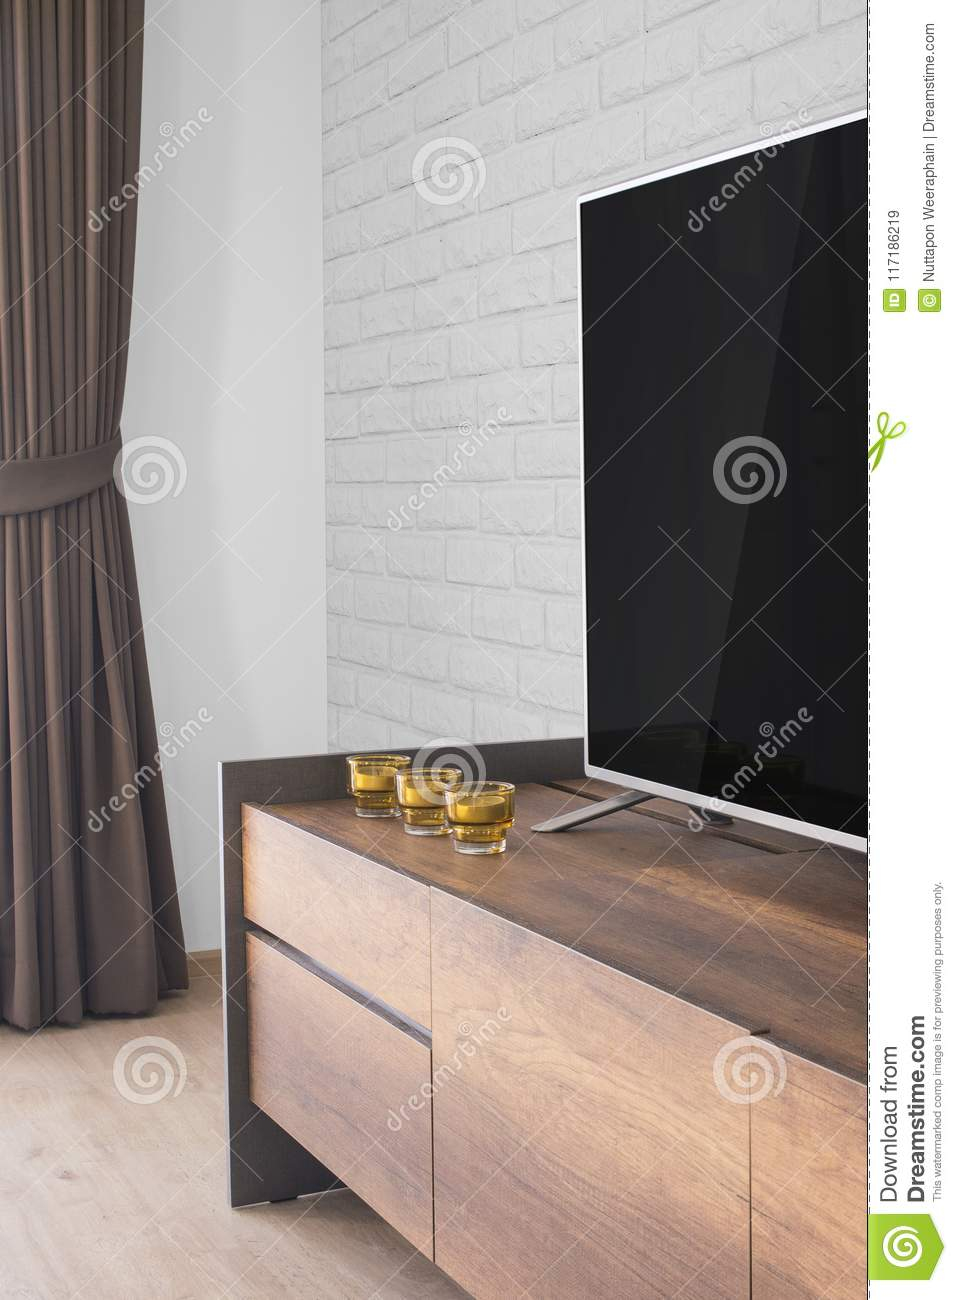 Led TV on TV stand with candles and curtain, white brick wall